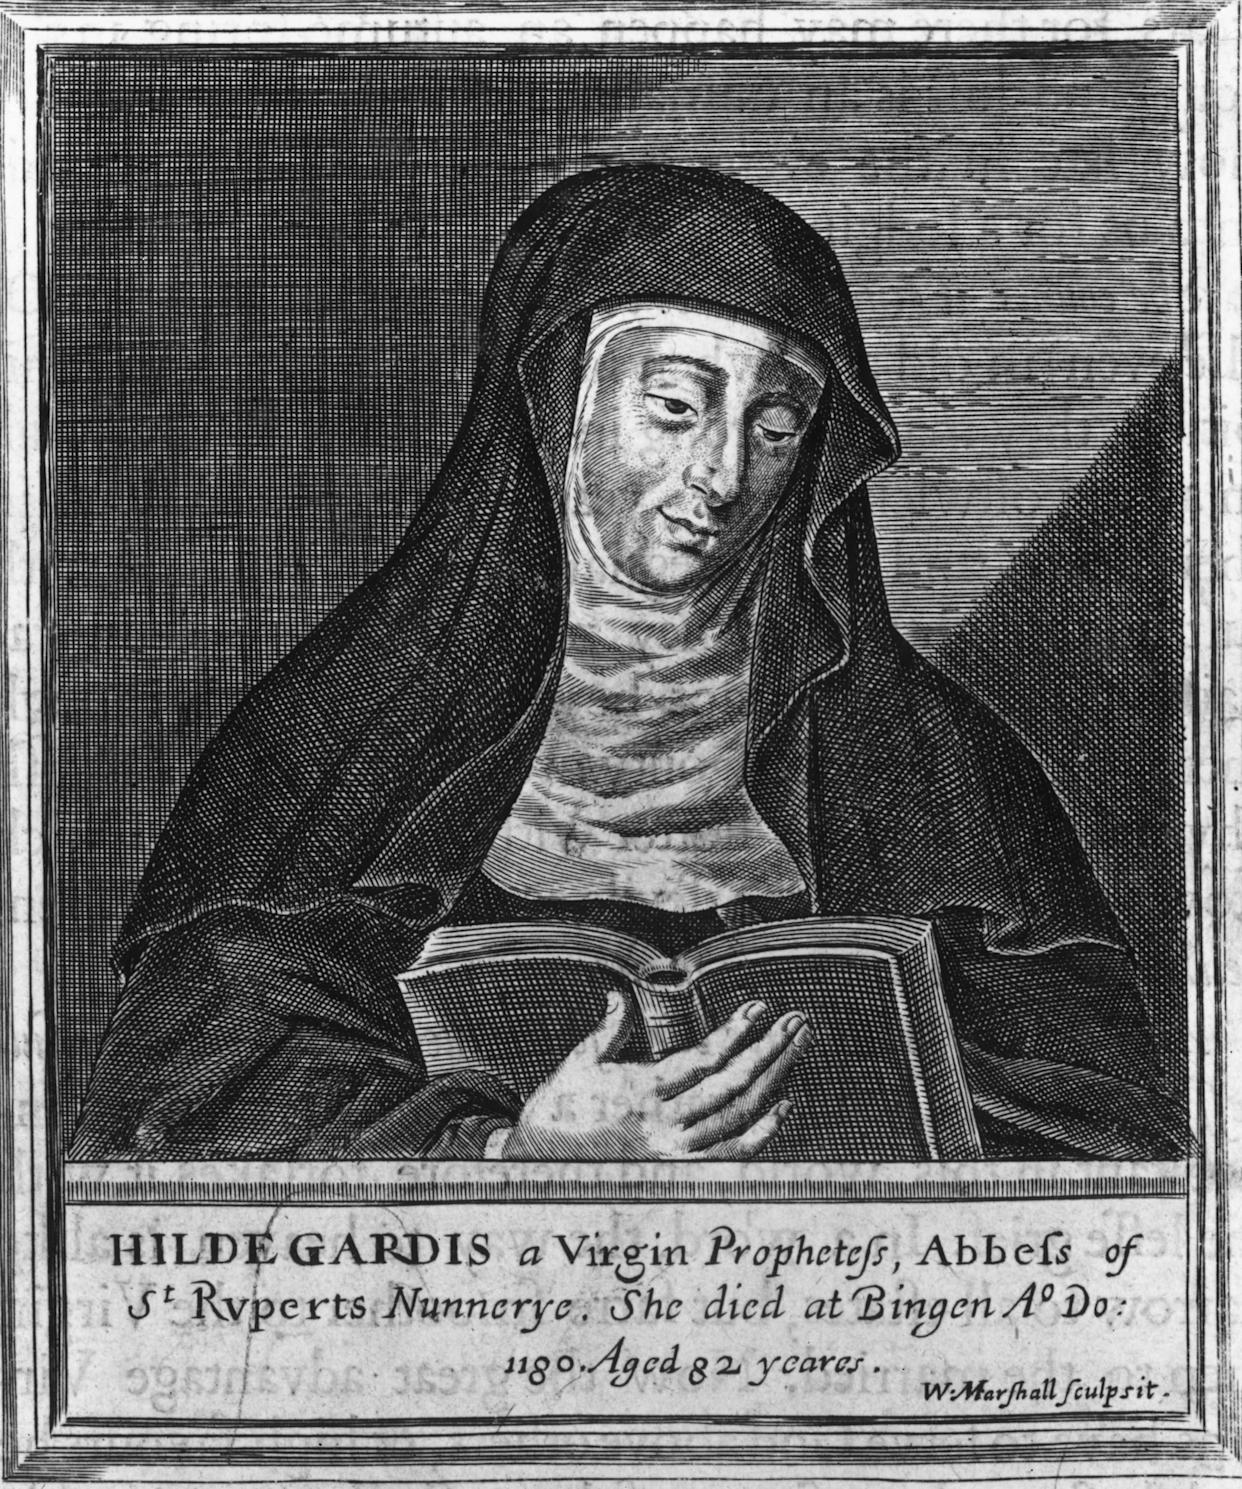 <span>Hildegard von Bingen</span>&amp;nbsp;was a Benedictine abbess who lived between 1098 and 1179. Hildegard became a nun as a teenager, though she had received <span>divine visions</span>&amp;nbsp;since early childhood. It wasn&amp;rsquo;t until her 40s that Hildegard began writing a record of these visions, which came to be known as <i>Scivias</i> (Know the Ways). She went on to write other texts documenting her philosophy and also composed short works on medicine, natural history, music and more. Bishops, popes, and kings <span>consulted her</span>&amp;nbsp;at a time when few women engaged in the political domain. She was canonized by Pope Benedict XVI in 2012.